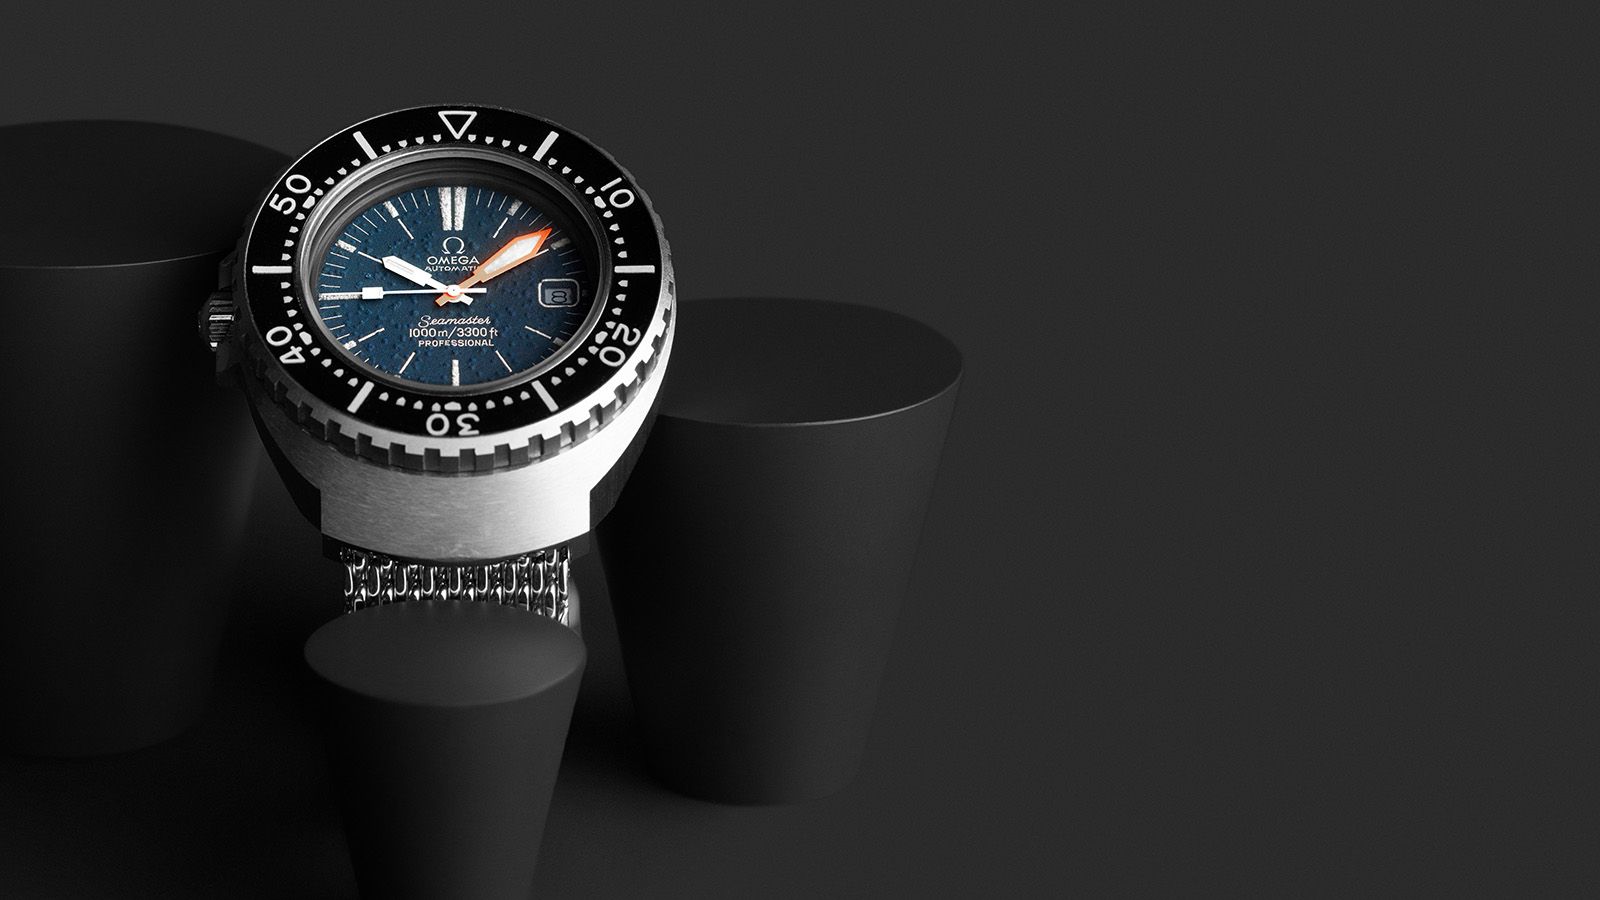 Do not stop buying your perfect watches it will be an exceptional experience